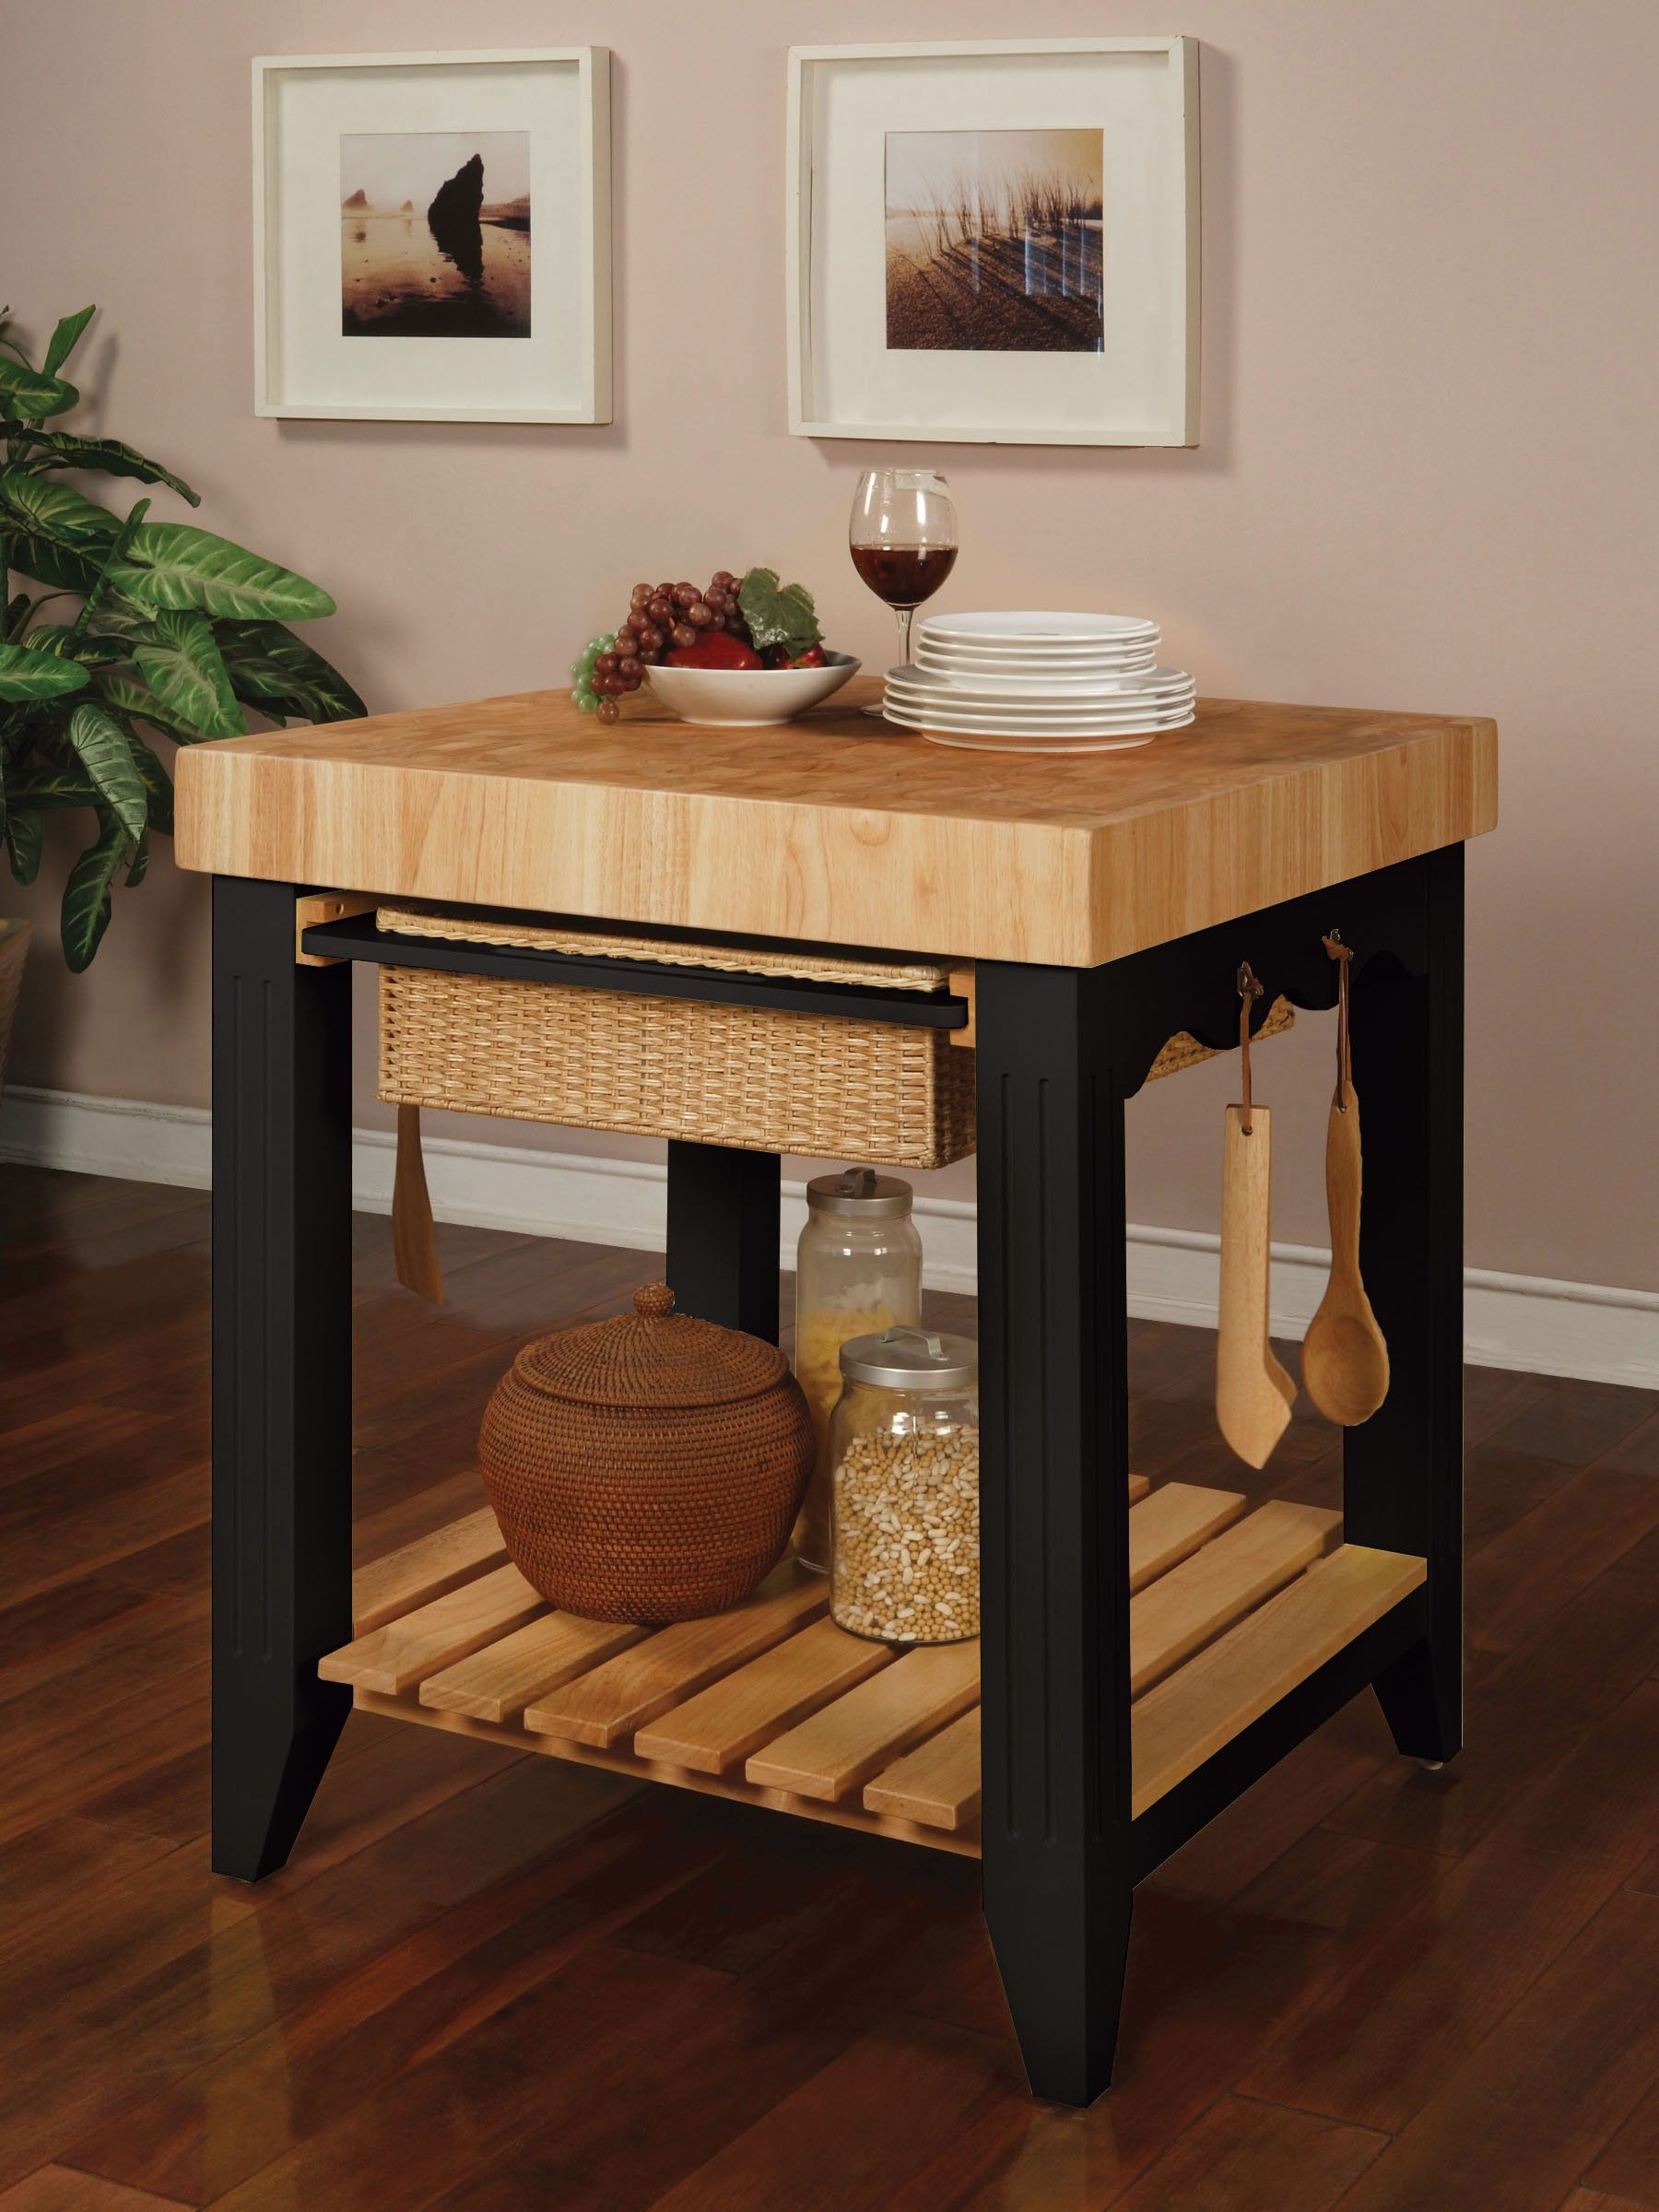 Uncategorized Kitchen Island With Butcher Block Top white kitchen island with butcher block top and 4 legs black wooden natural